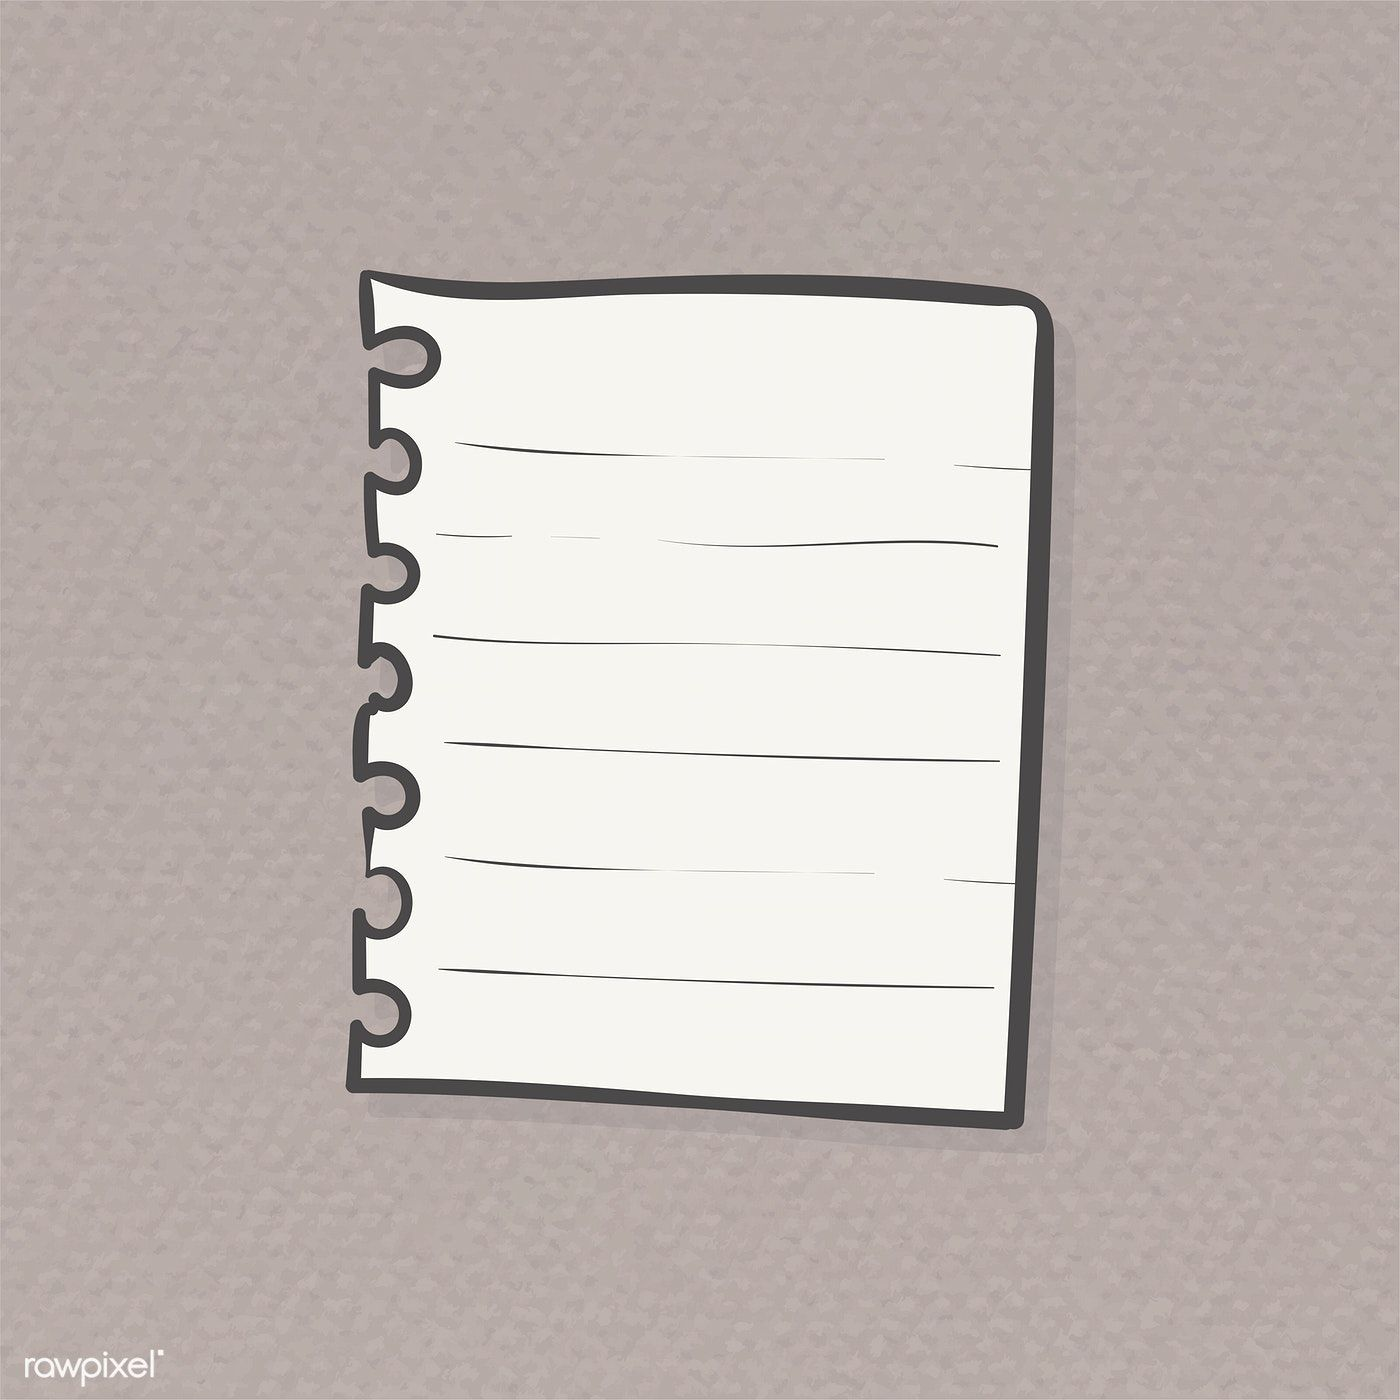 Torn sheet of paper from spiral notebook illustration